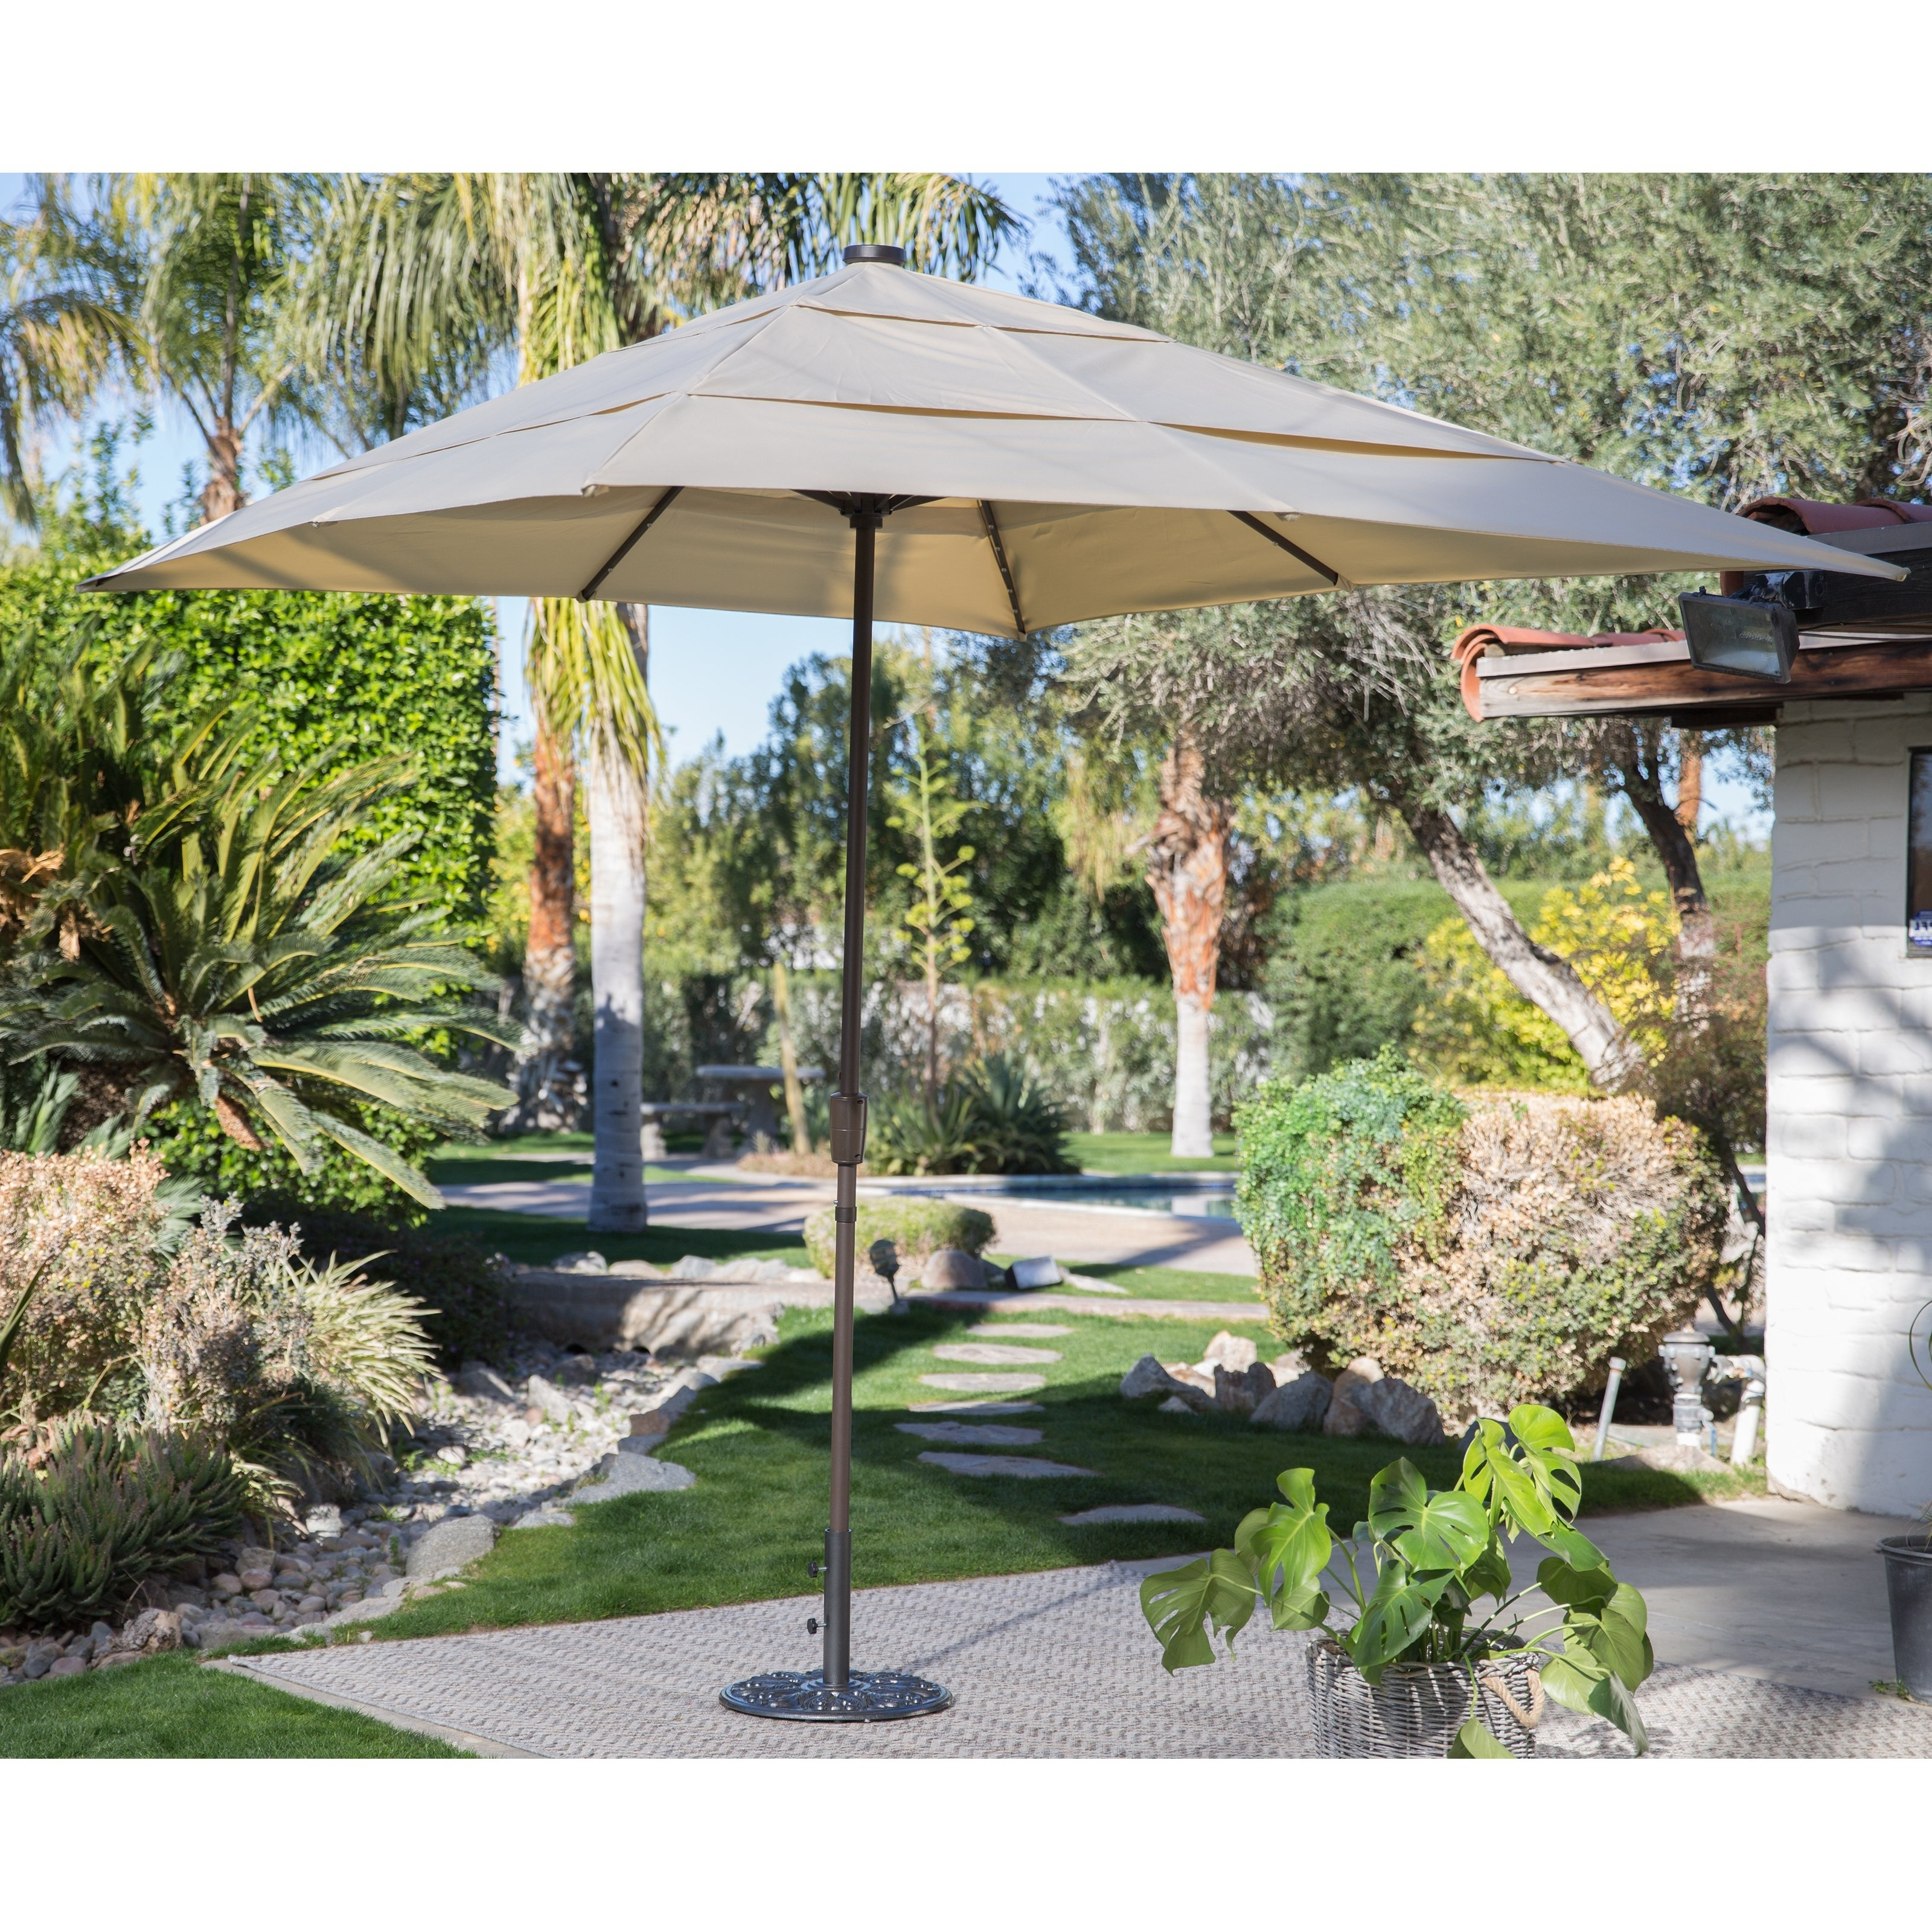 Trendy Lighted Umbrellas For Patio For Coral Coast 8 X 11 Ft (View 19 of 20)